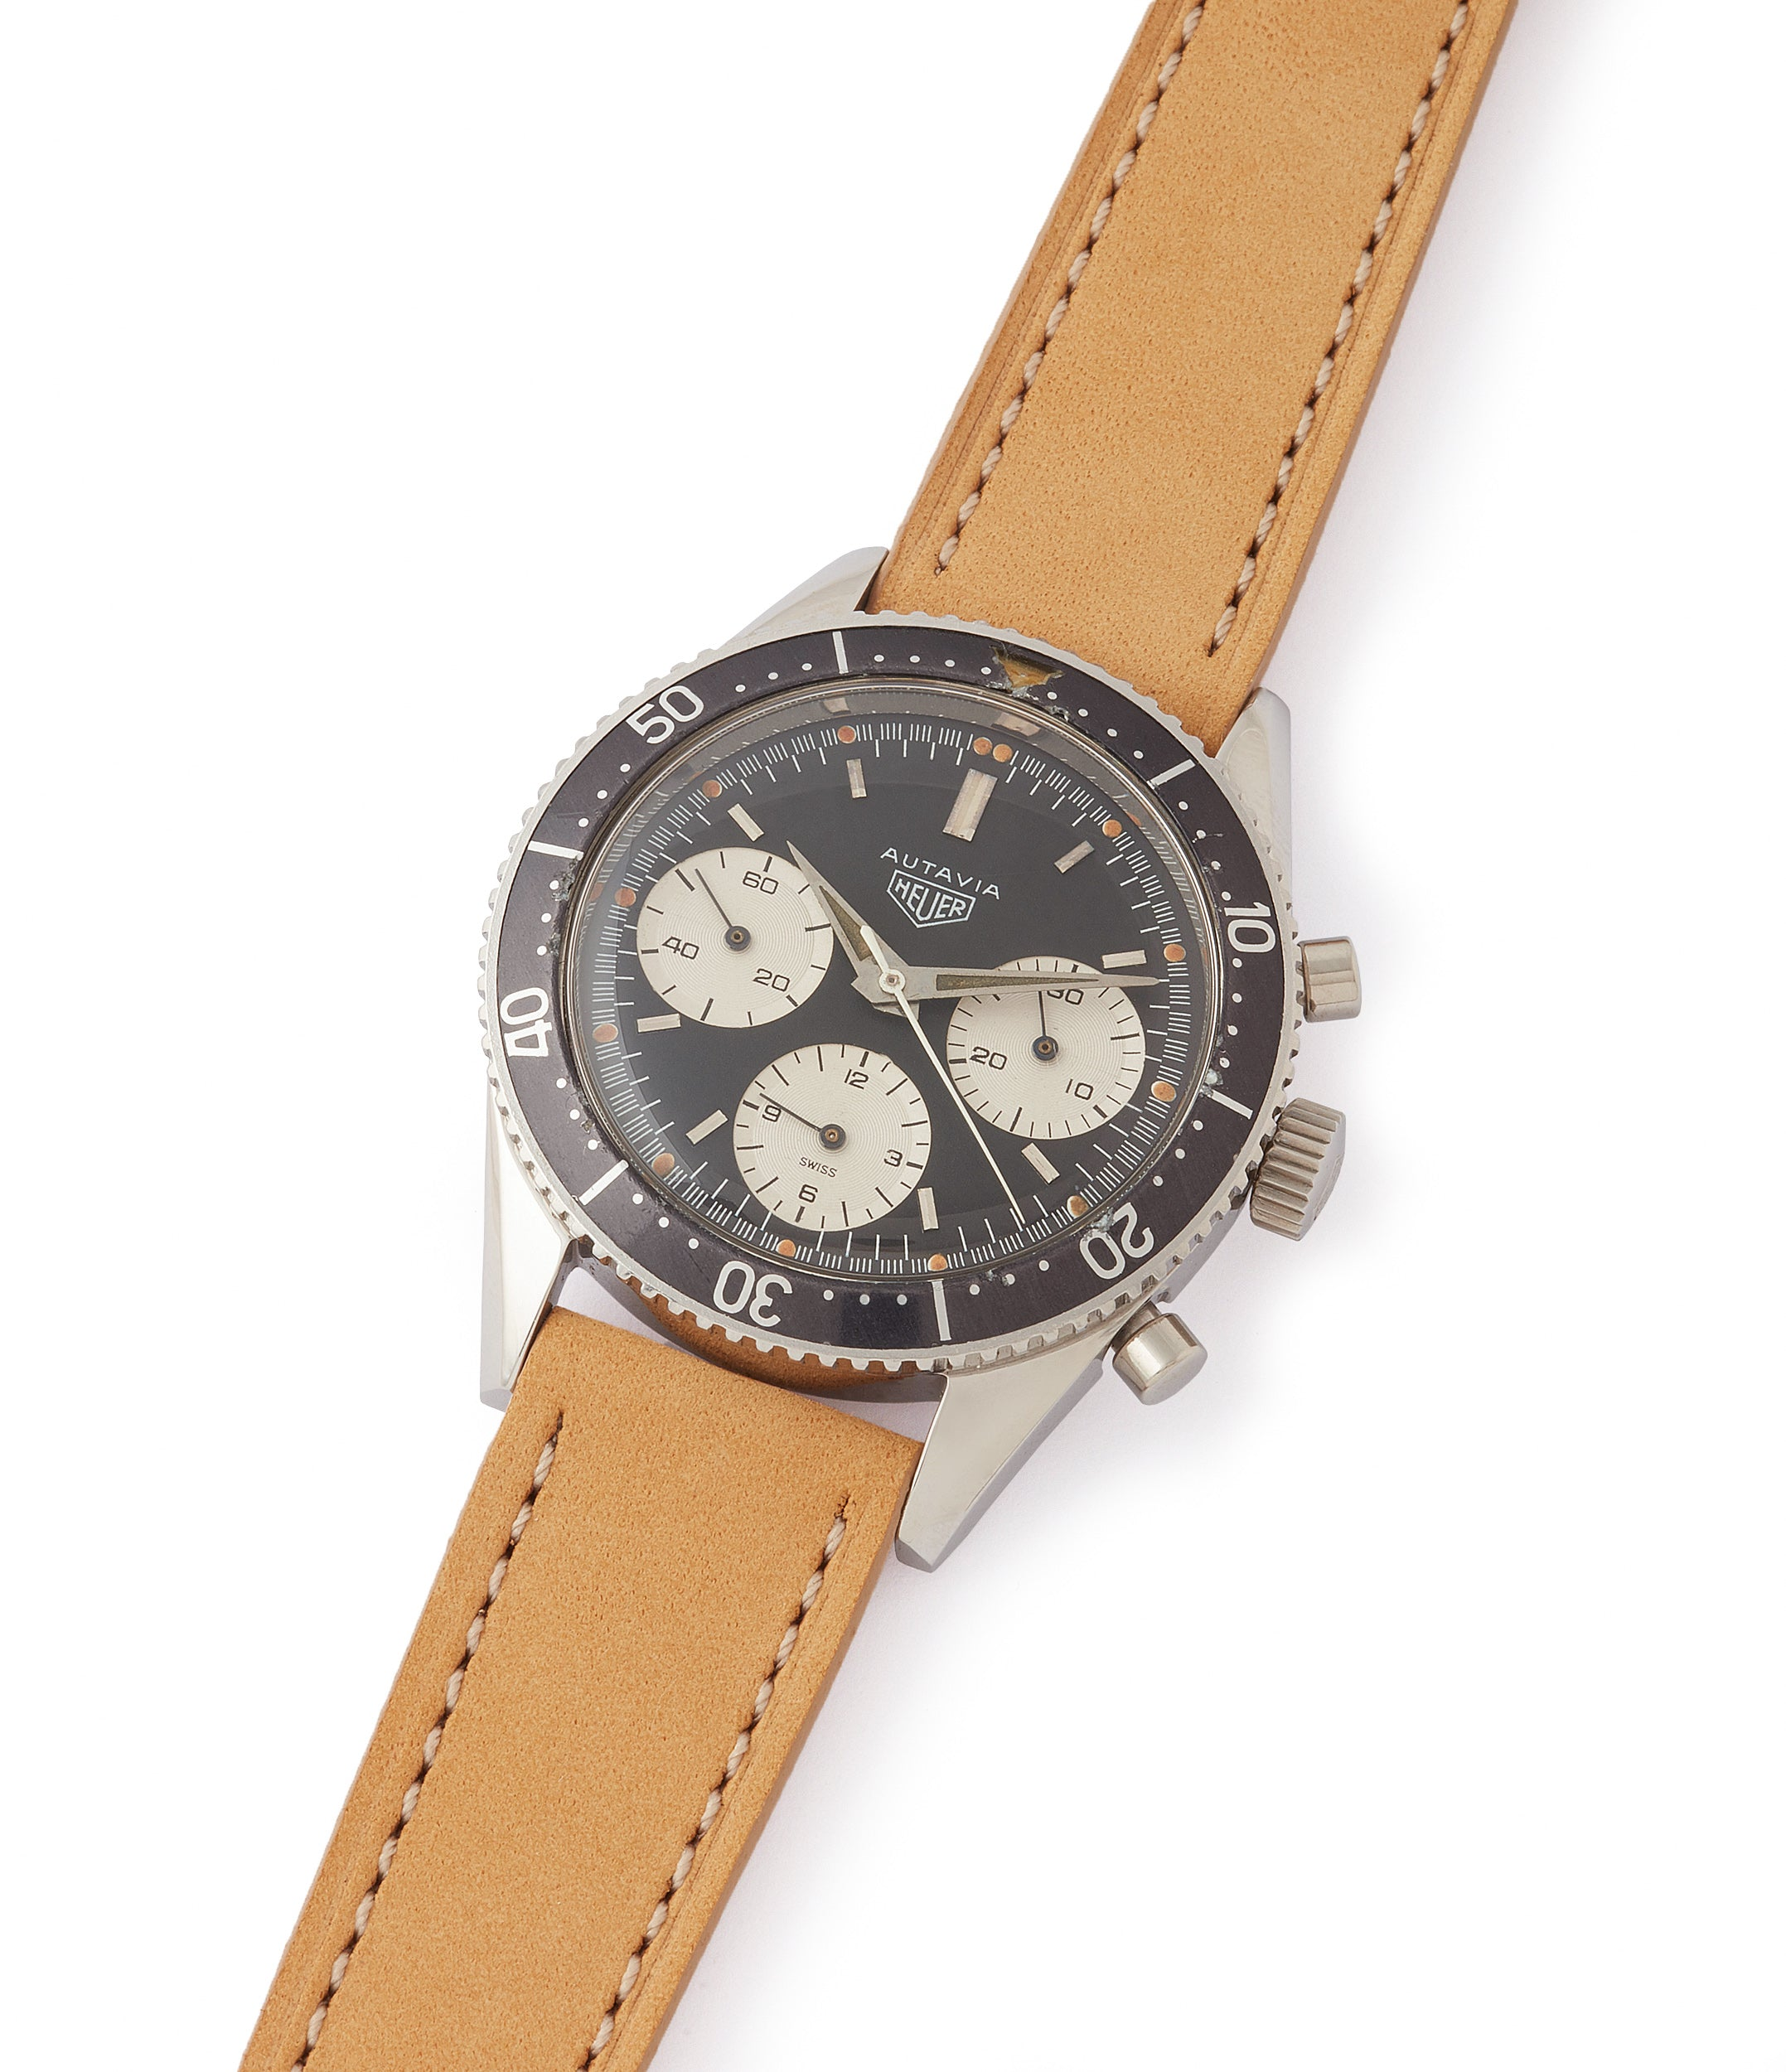 shop vintage Heuer Autavia 2446 Second Execution Valjoux 72 rare first-owner chronograph steel racing sport watch for sale online at A Collected Man London UK rare watch specilaist